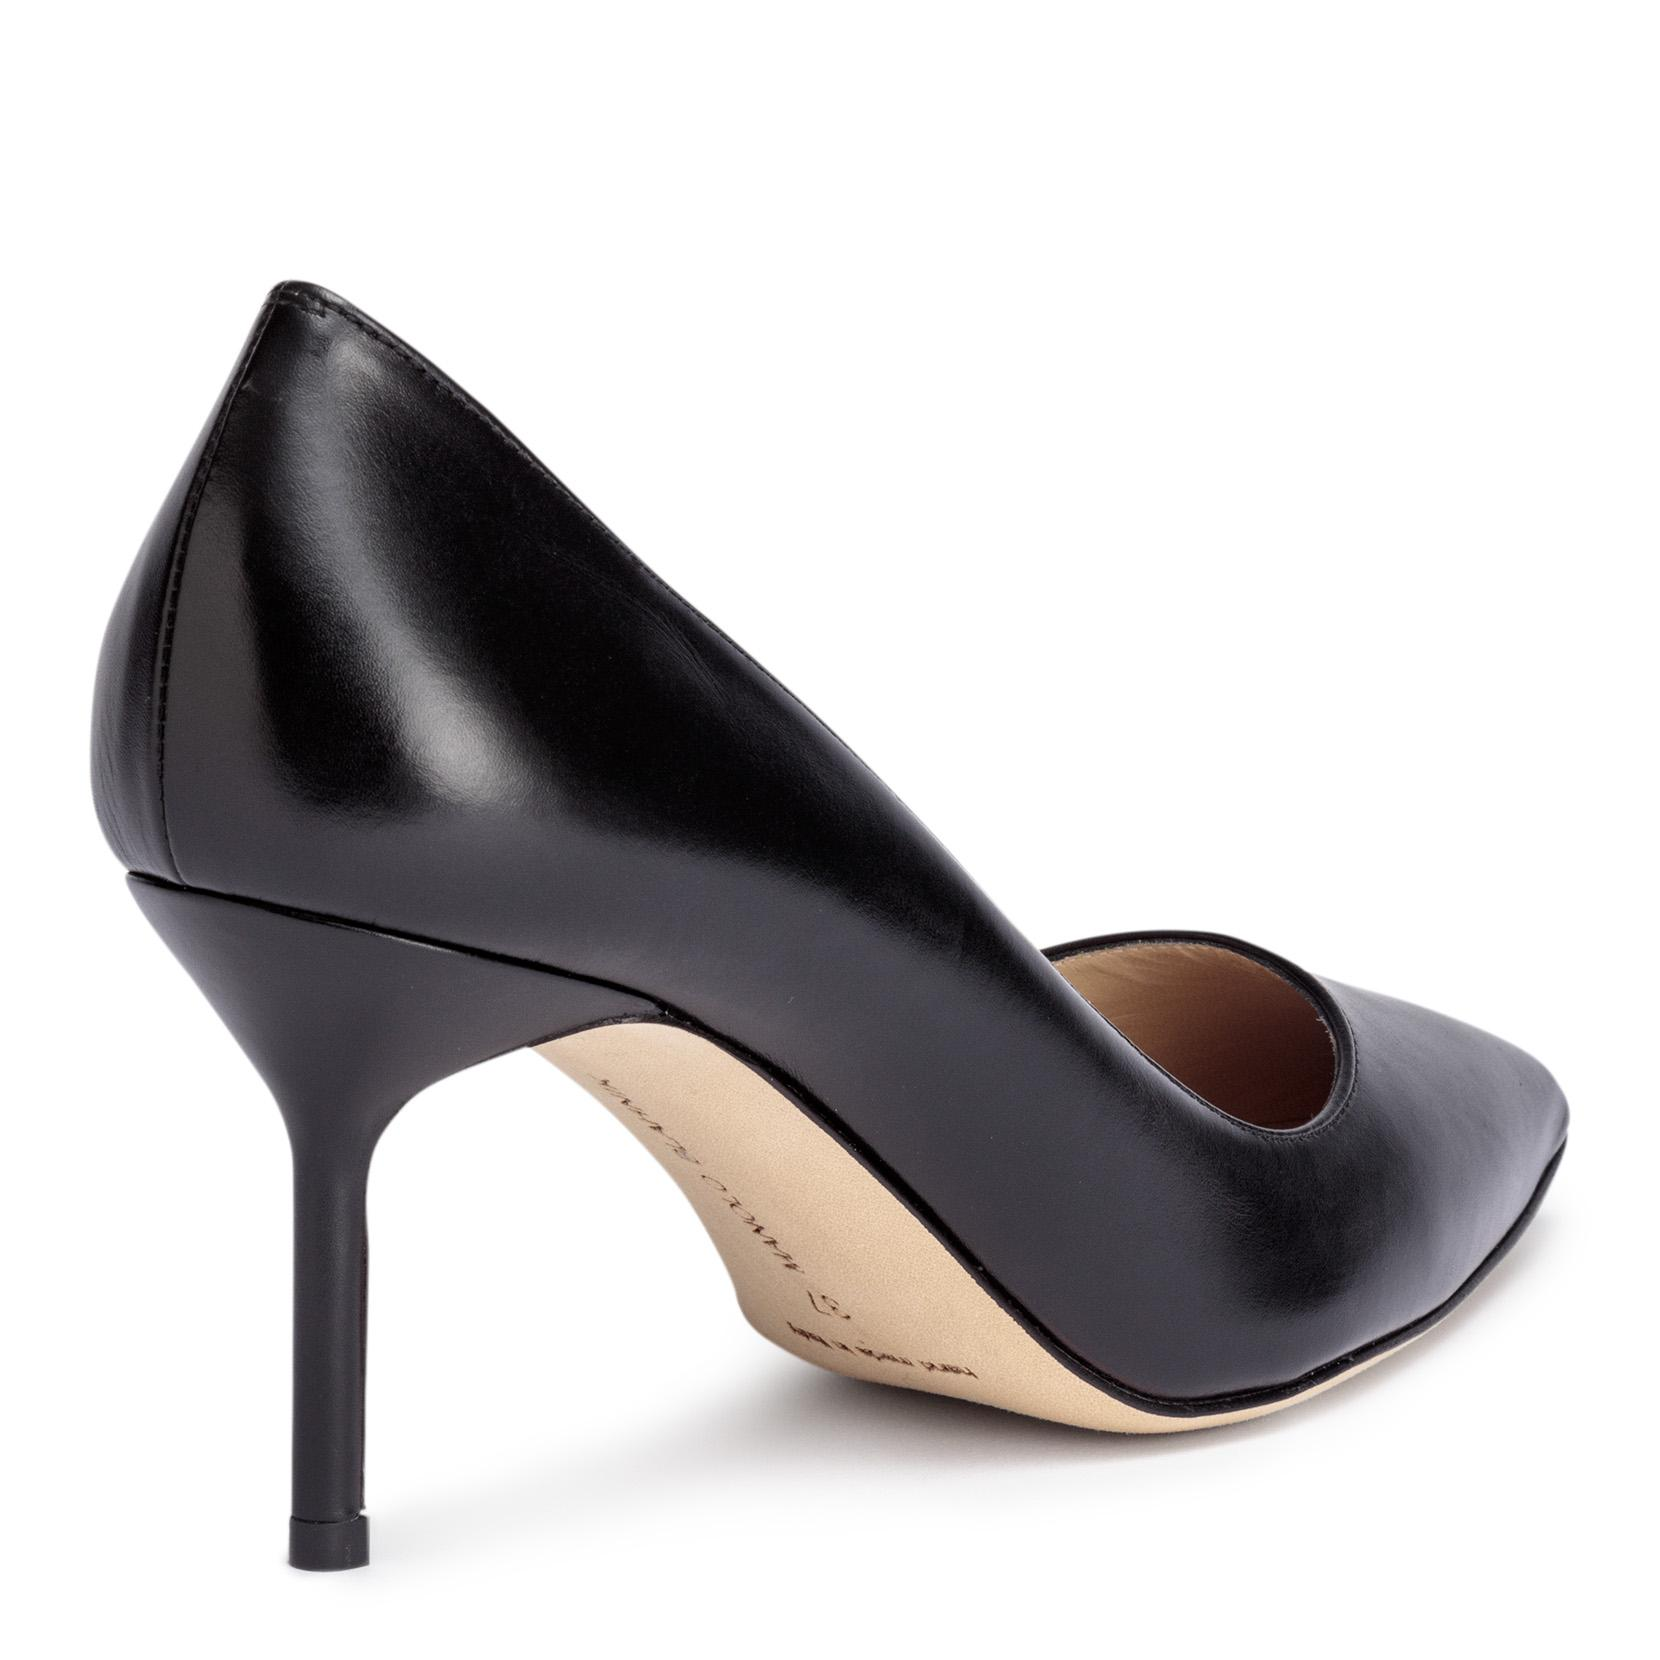 BB70 black suede pump Manolo Blahnik